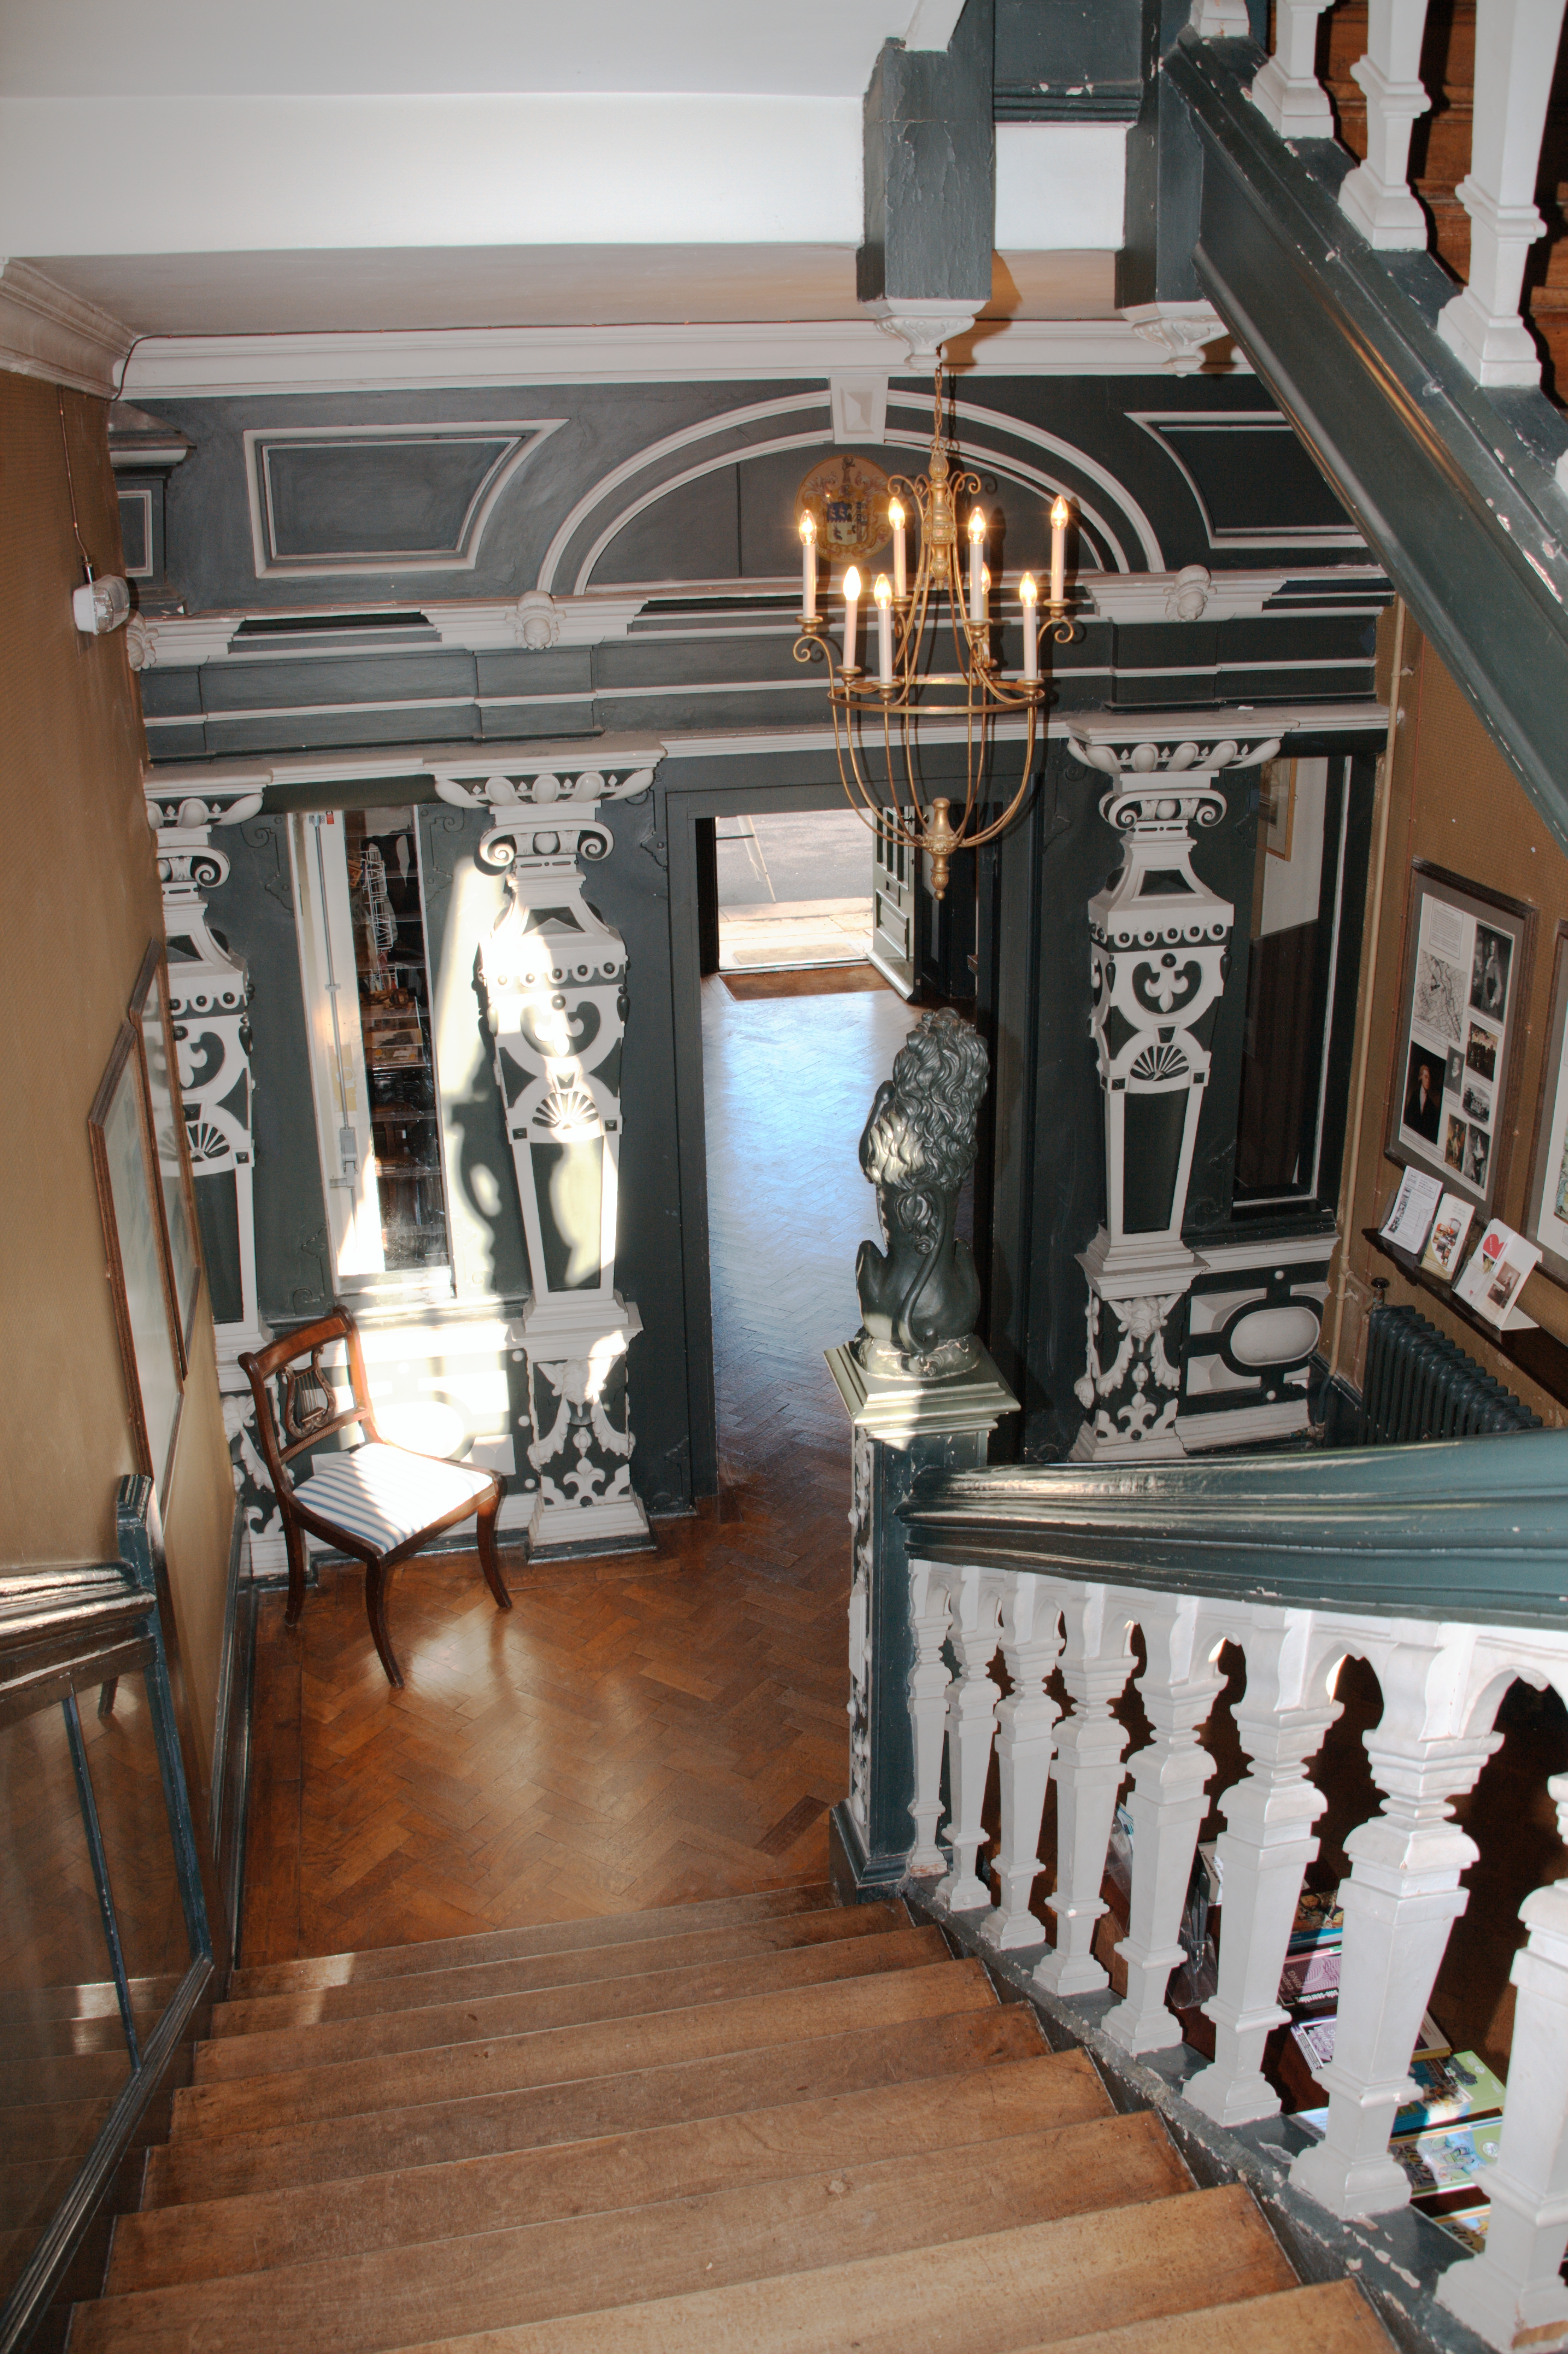 File:Boston manor house stairs 3087alt.jpg - Wikimedia Commons